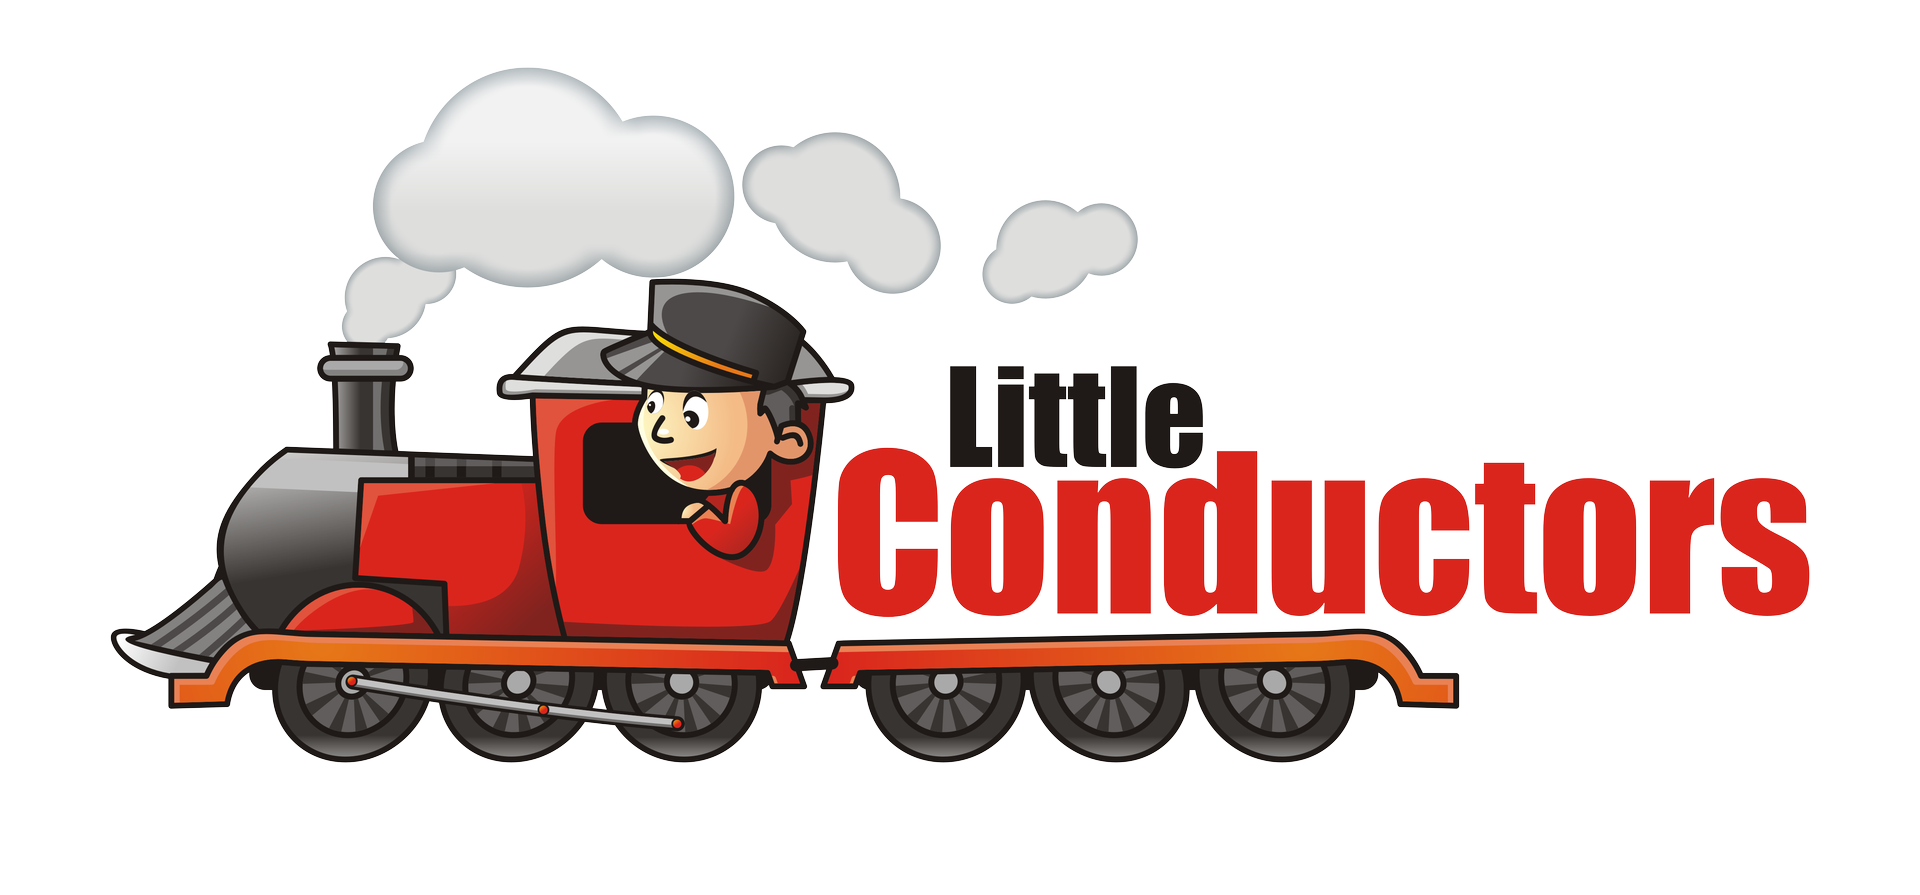 Driving clipart train operator. Little conductors trackless rental